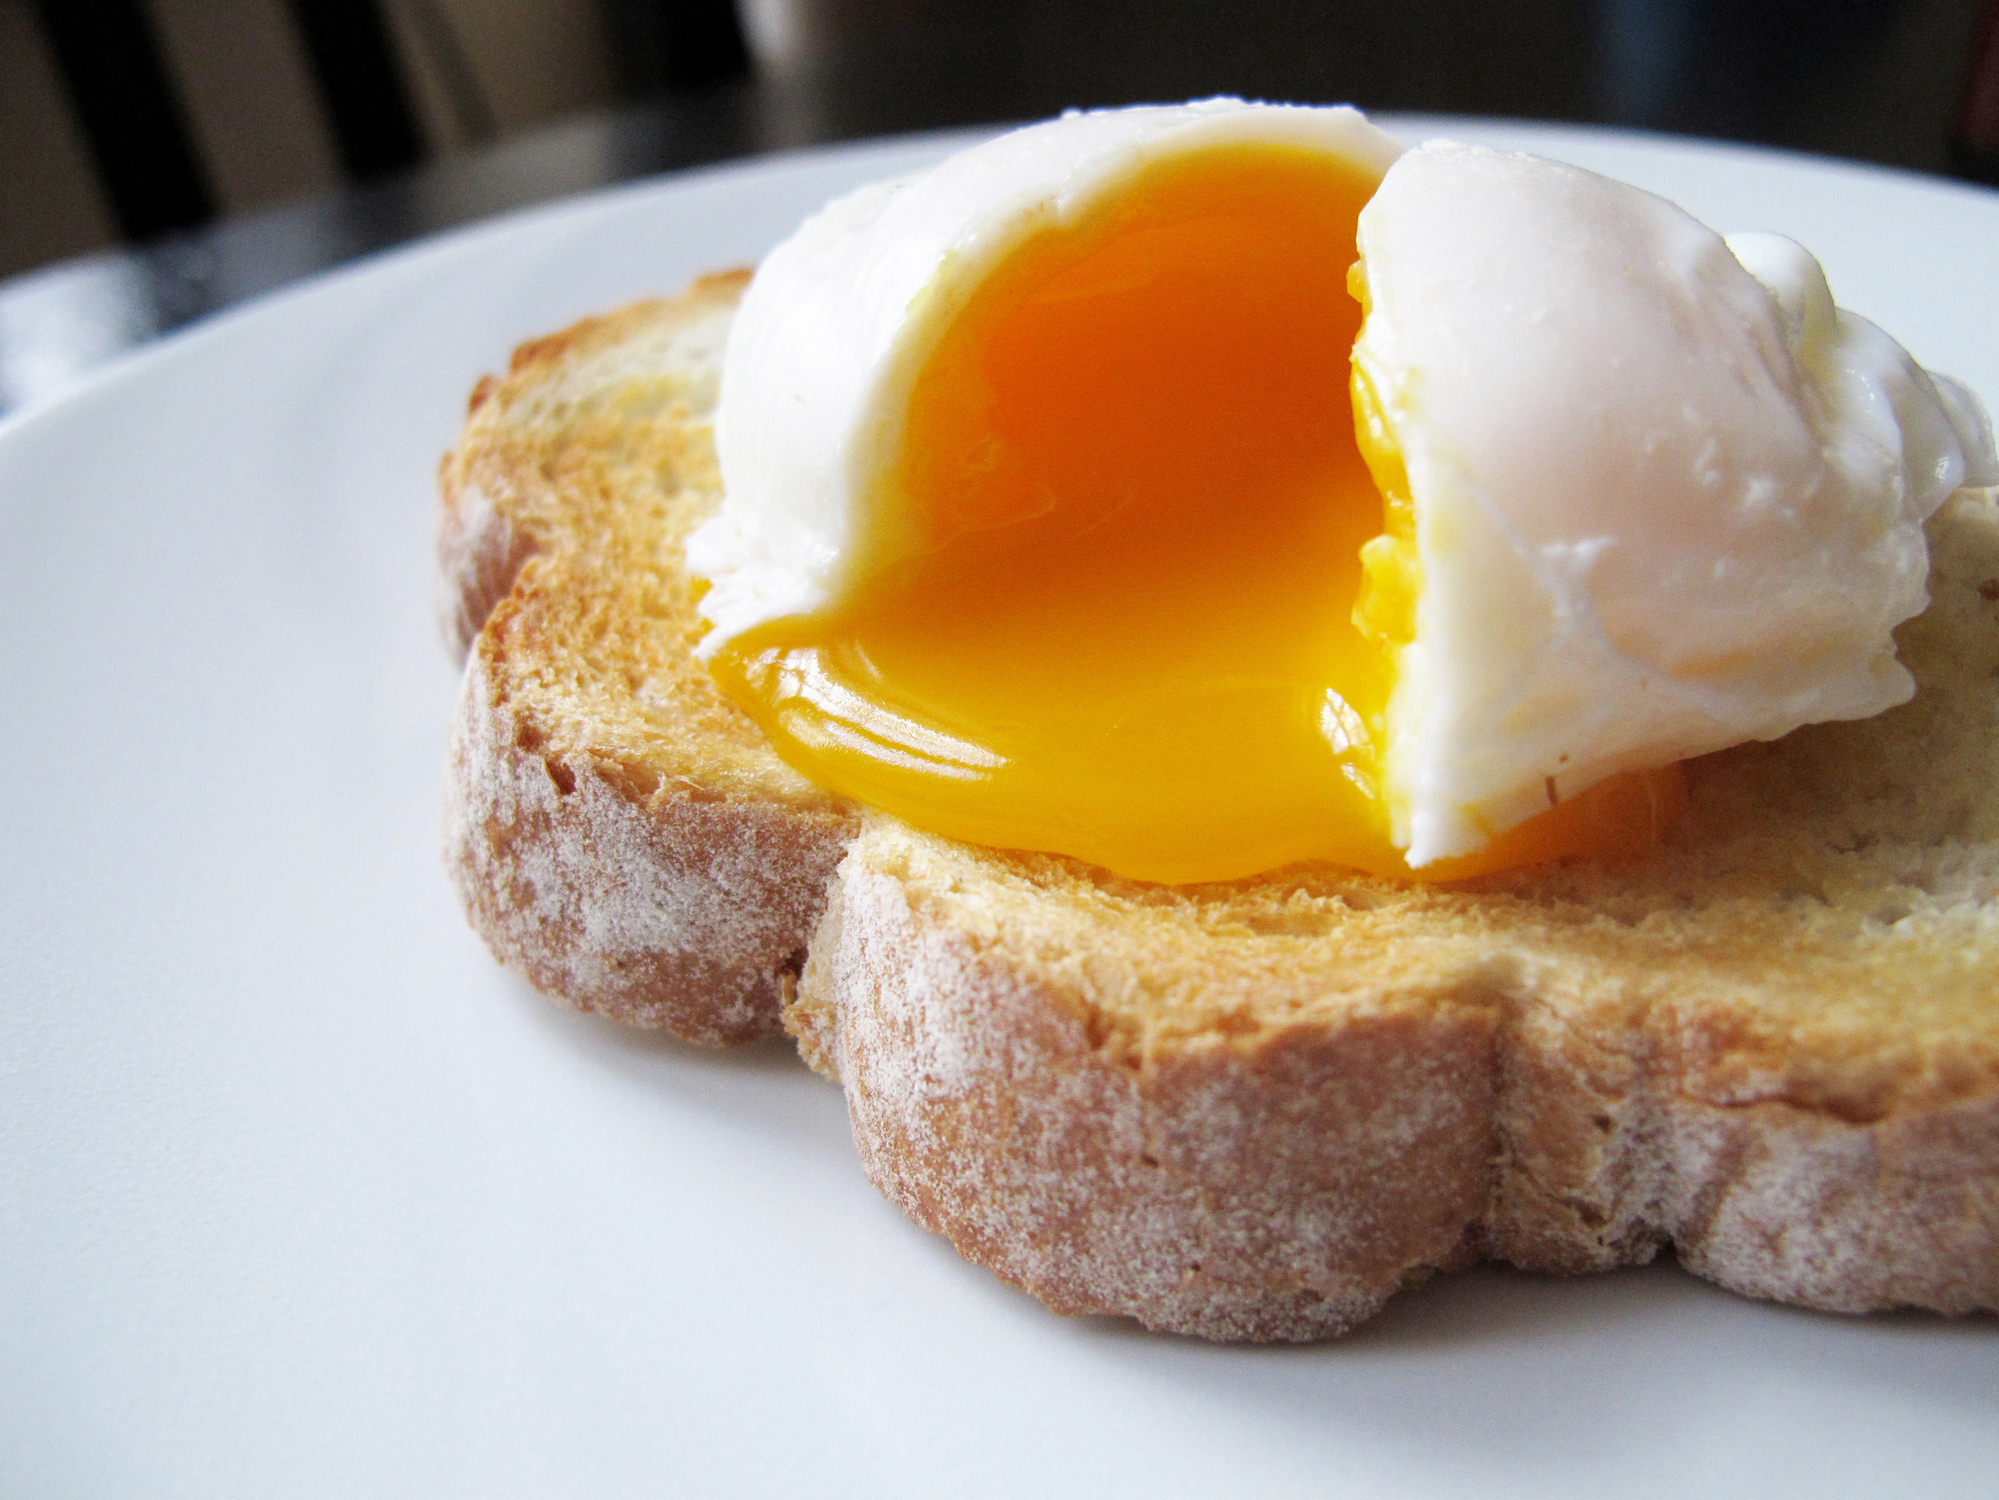 EC: Eggs Are Good for Children's Growth, According to a New Study